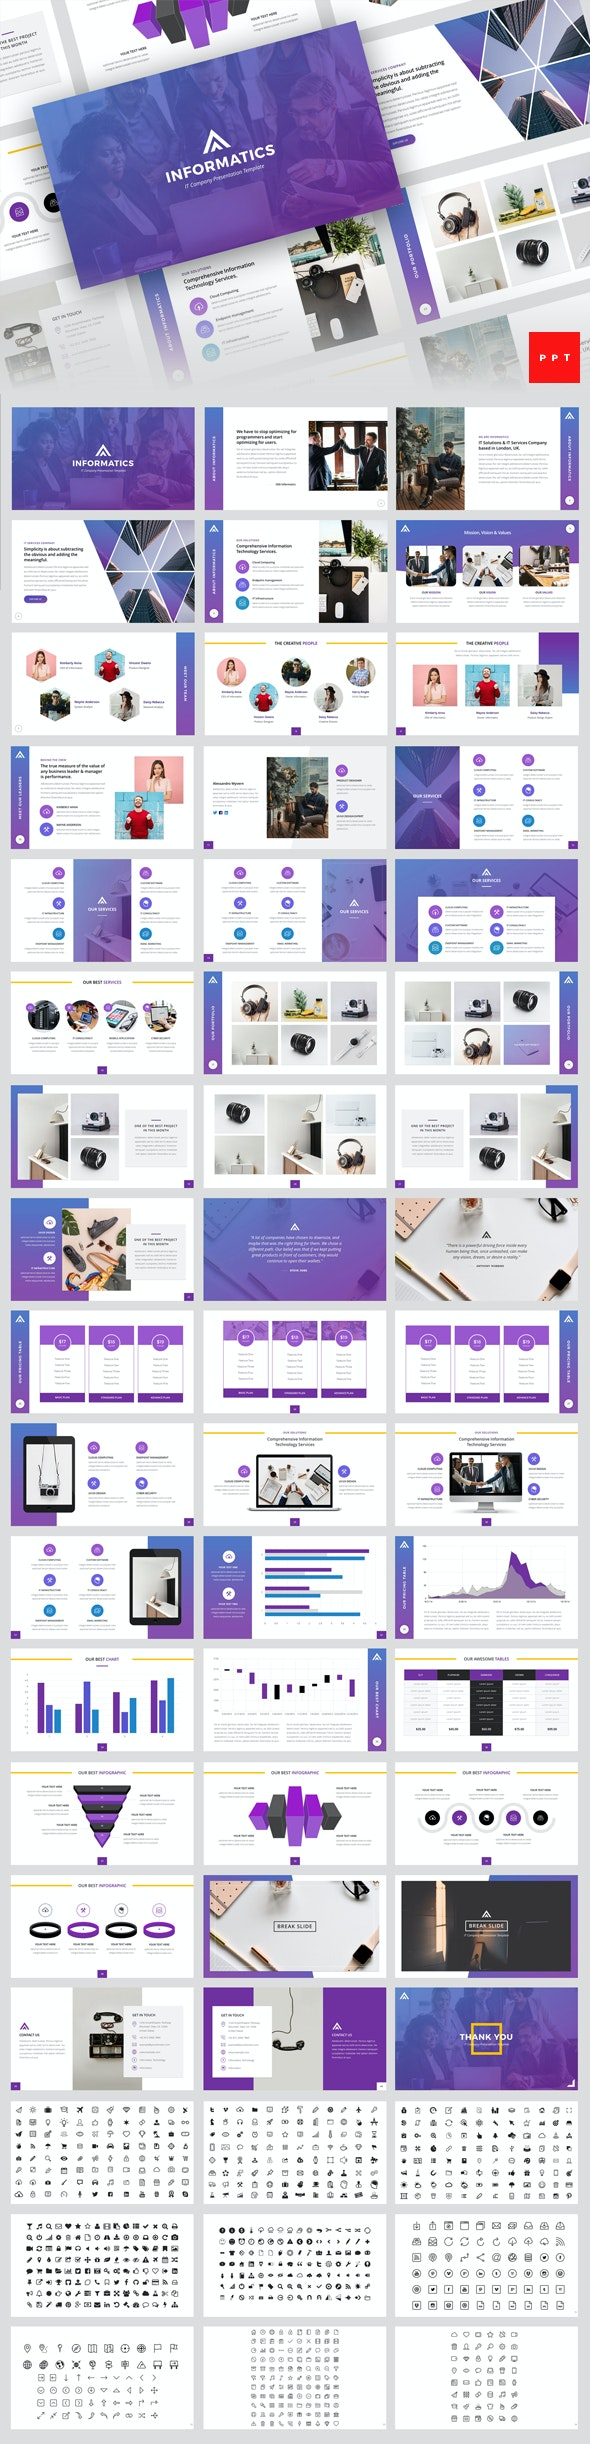 Informatics - IT Company PowerPoint Template - Business PowerPoint Templates